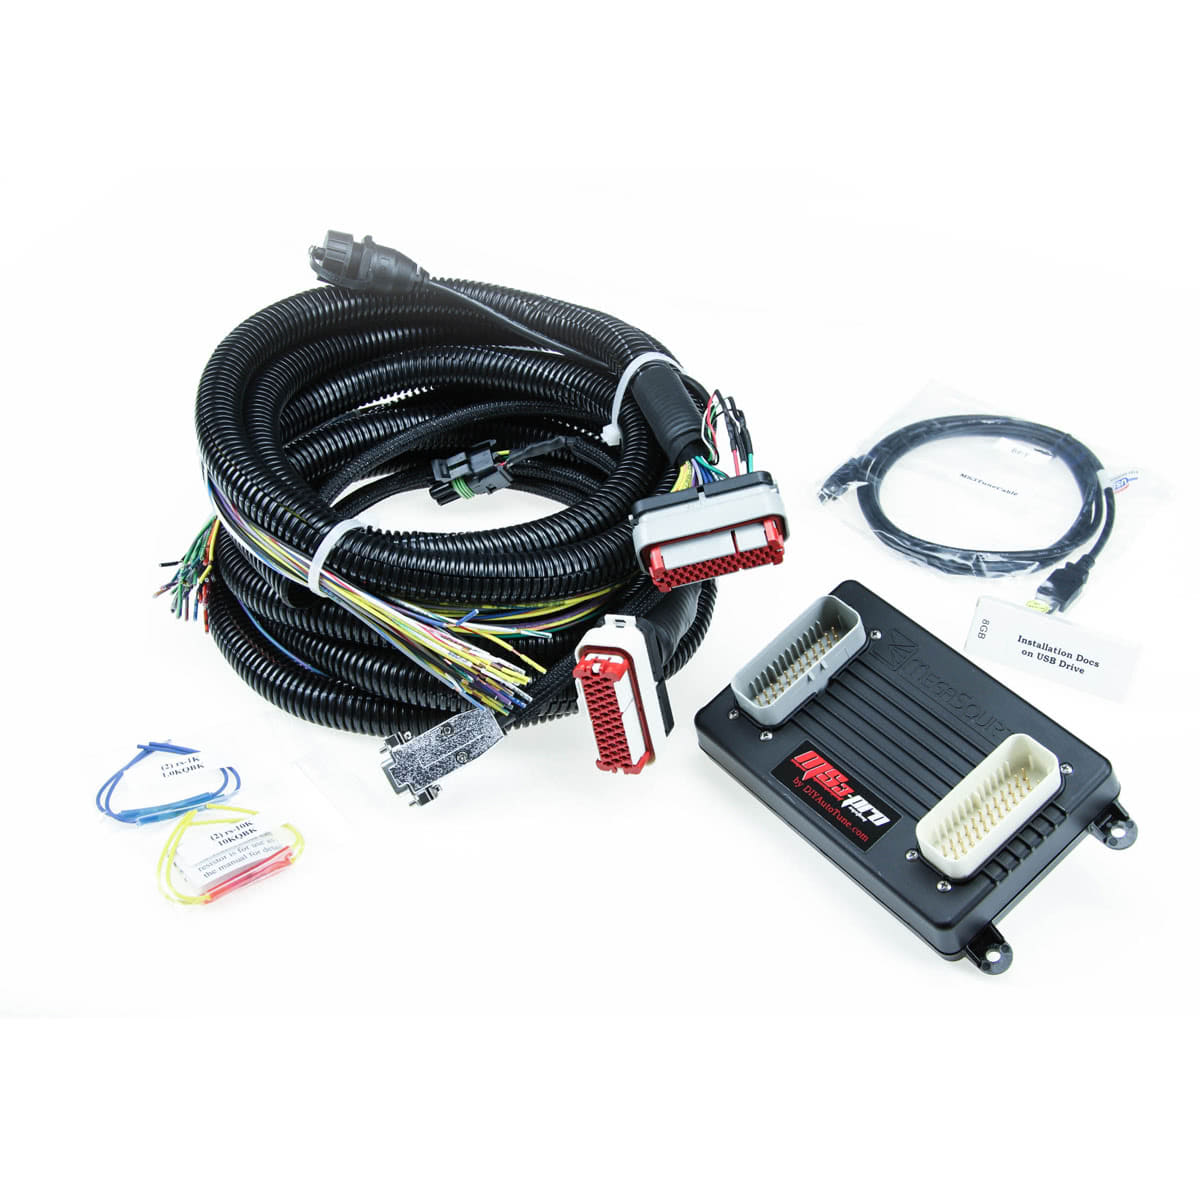 MS3Pro Pkg1_3 ms3pro standalone ecu with 8' wiring harness j32a wiring harness at nearapp.co